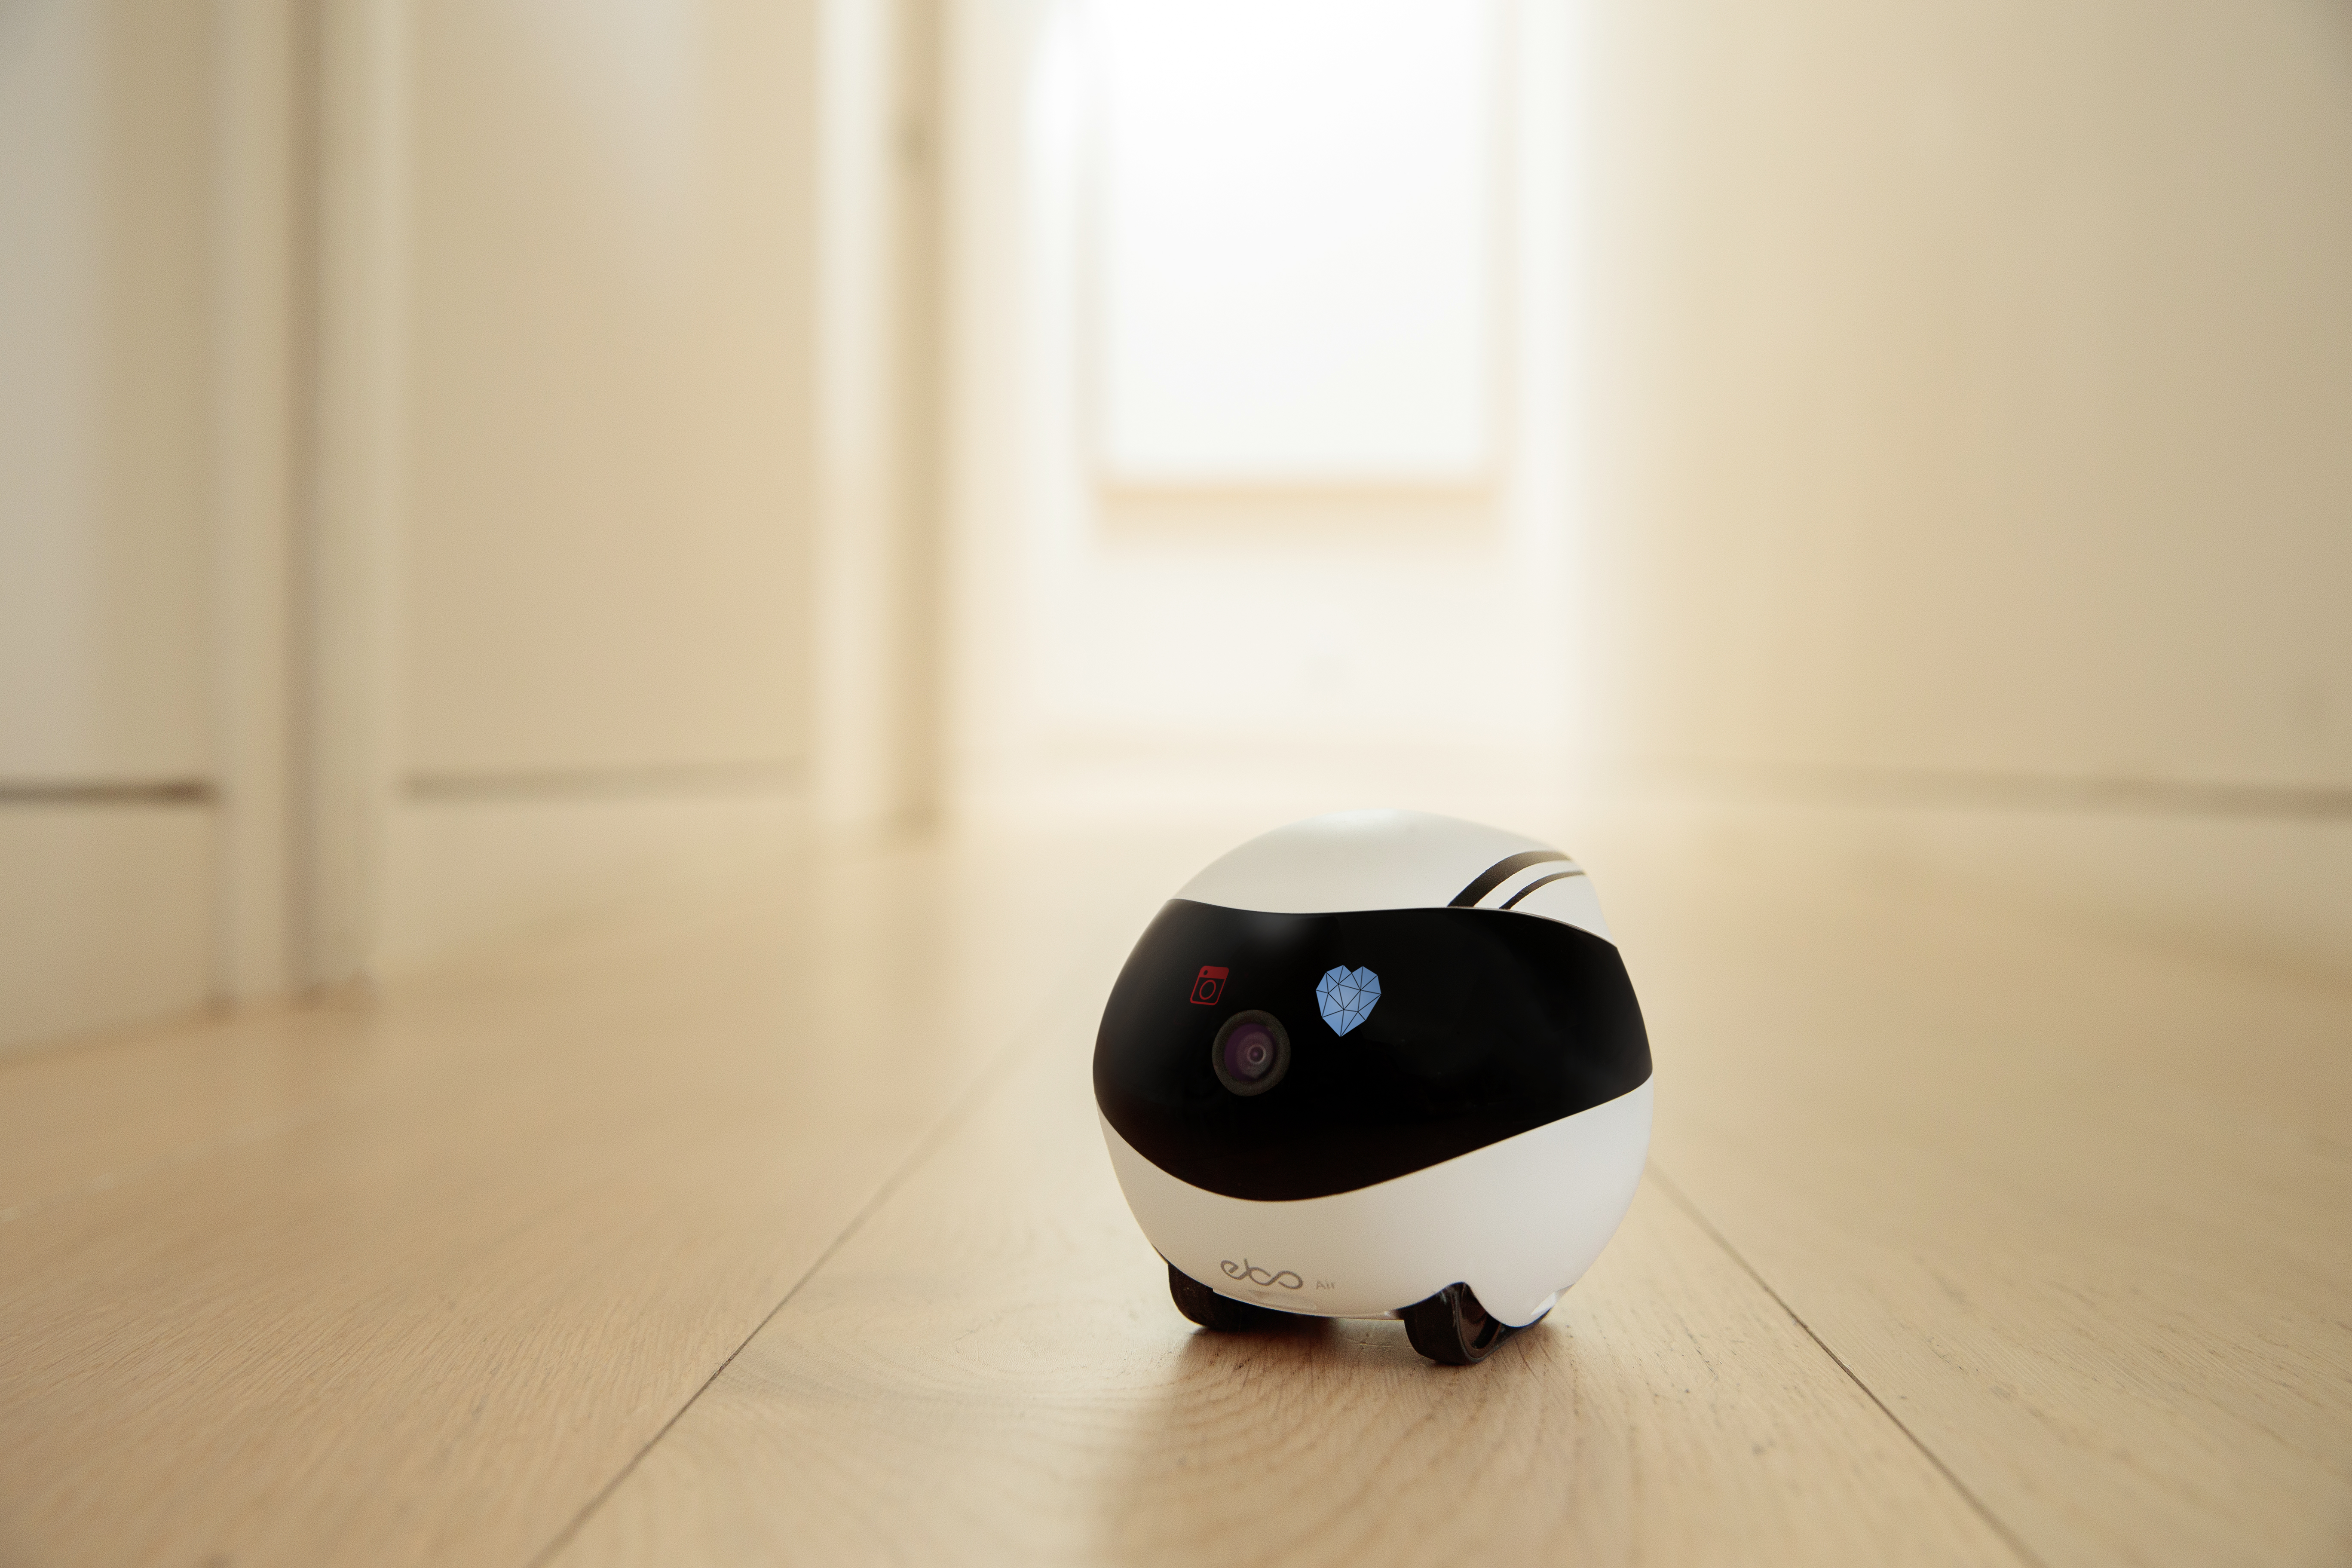 Ebo is a versatile home robot with a camera, speaker and microphone so remote users can chat